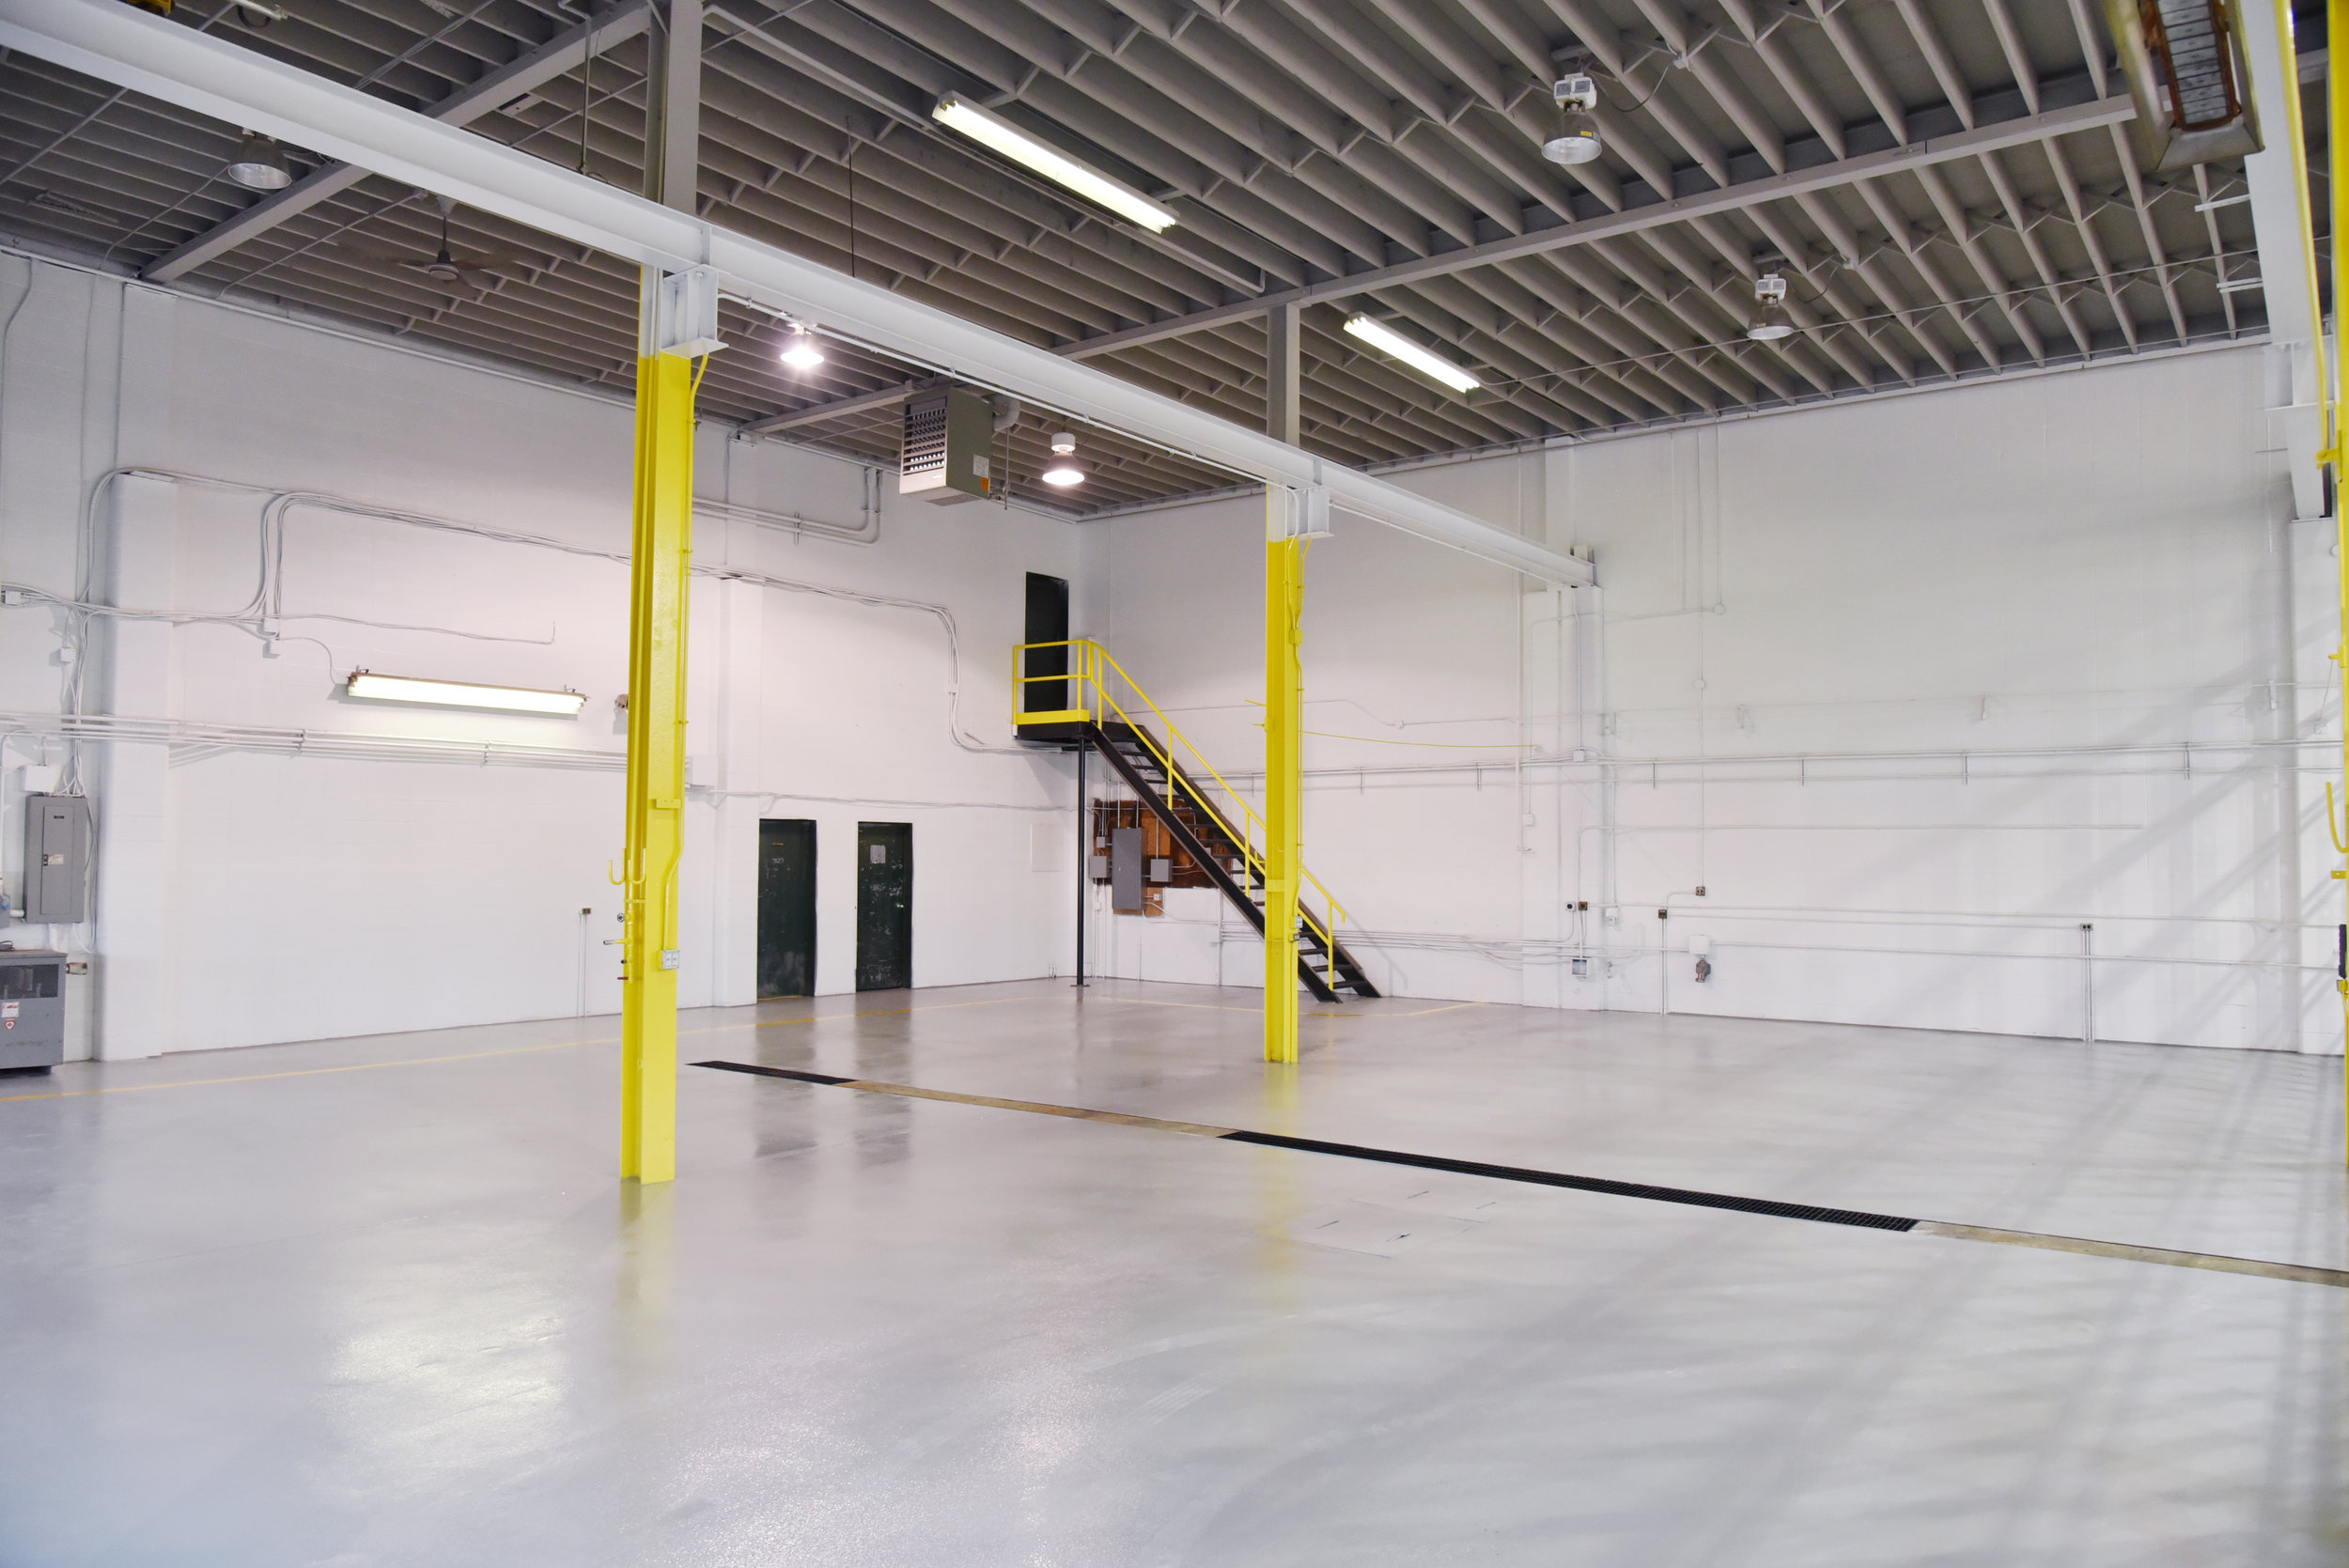 Western One - Floor Epoxy and painting of walls and ceilings